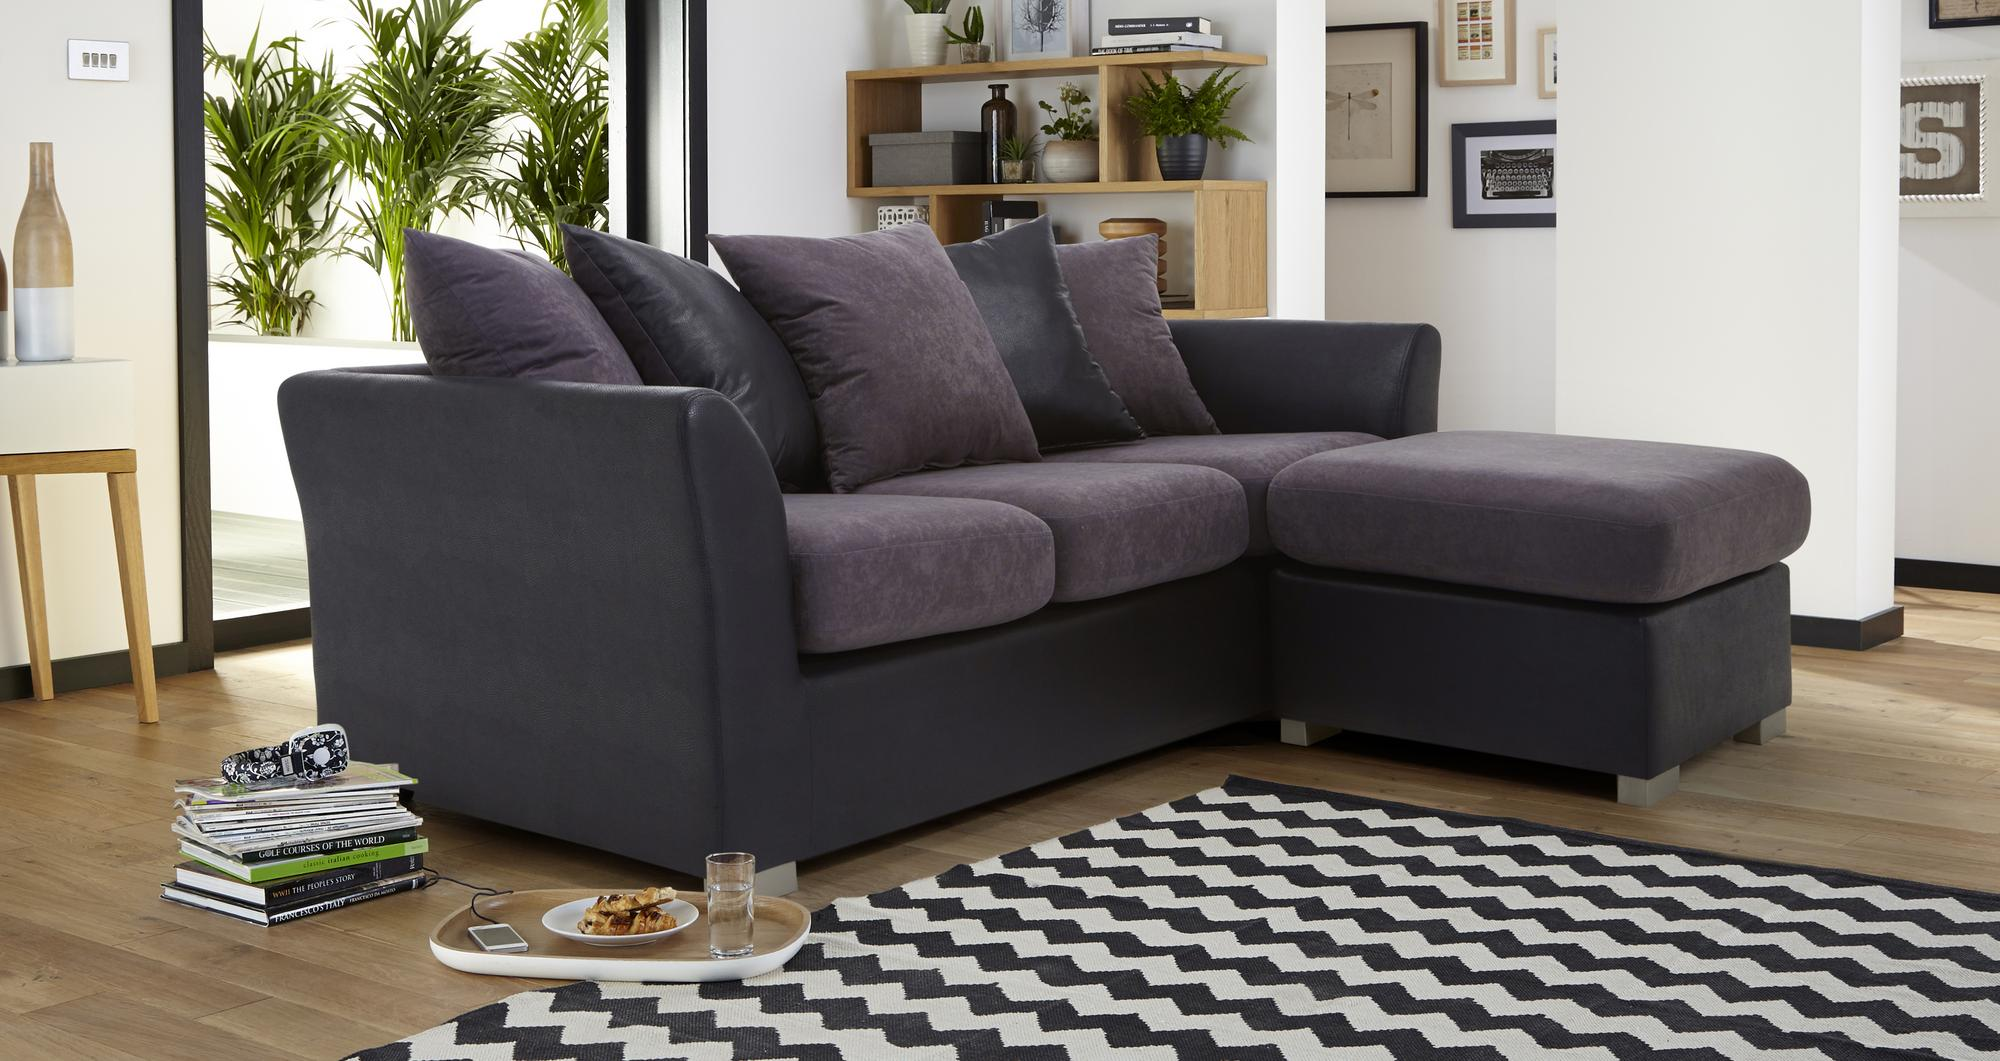 Dfs gallery black fabric chaise corner sofa left or right for Black fabric sectional sofa with chaise